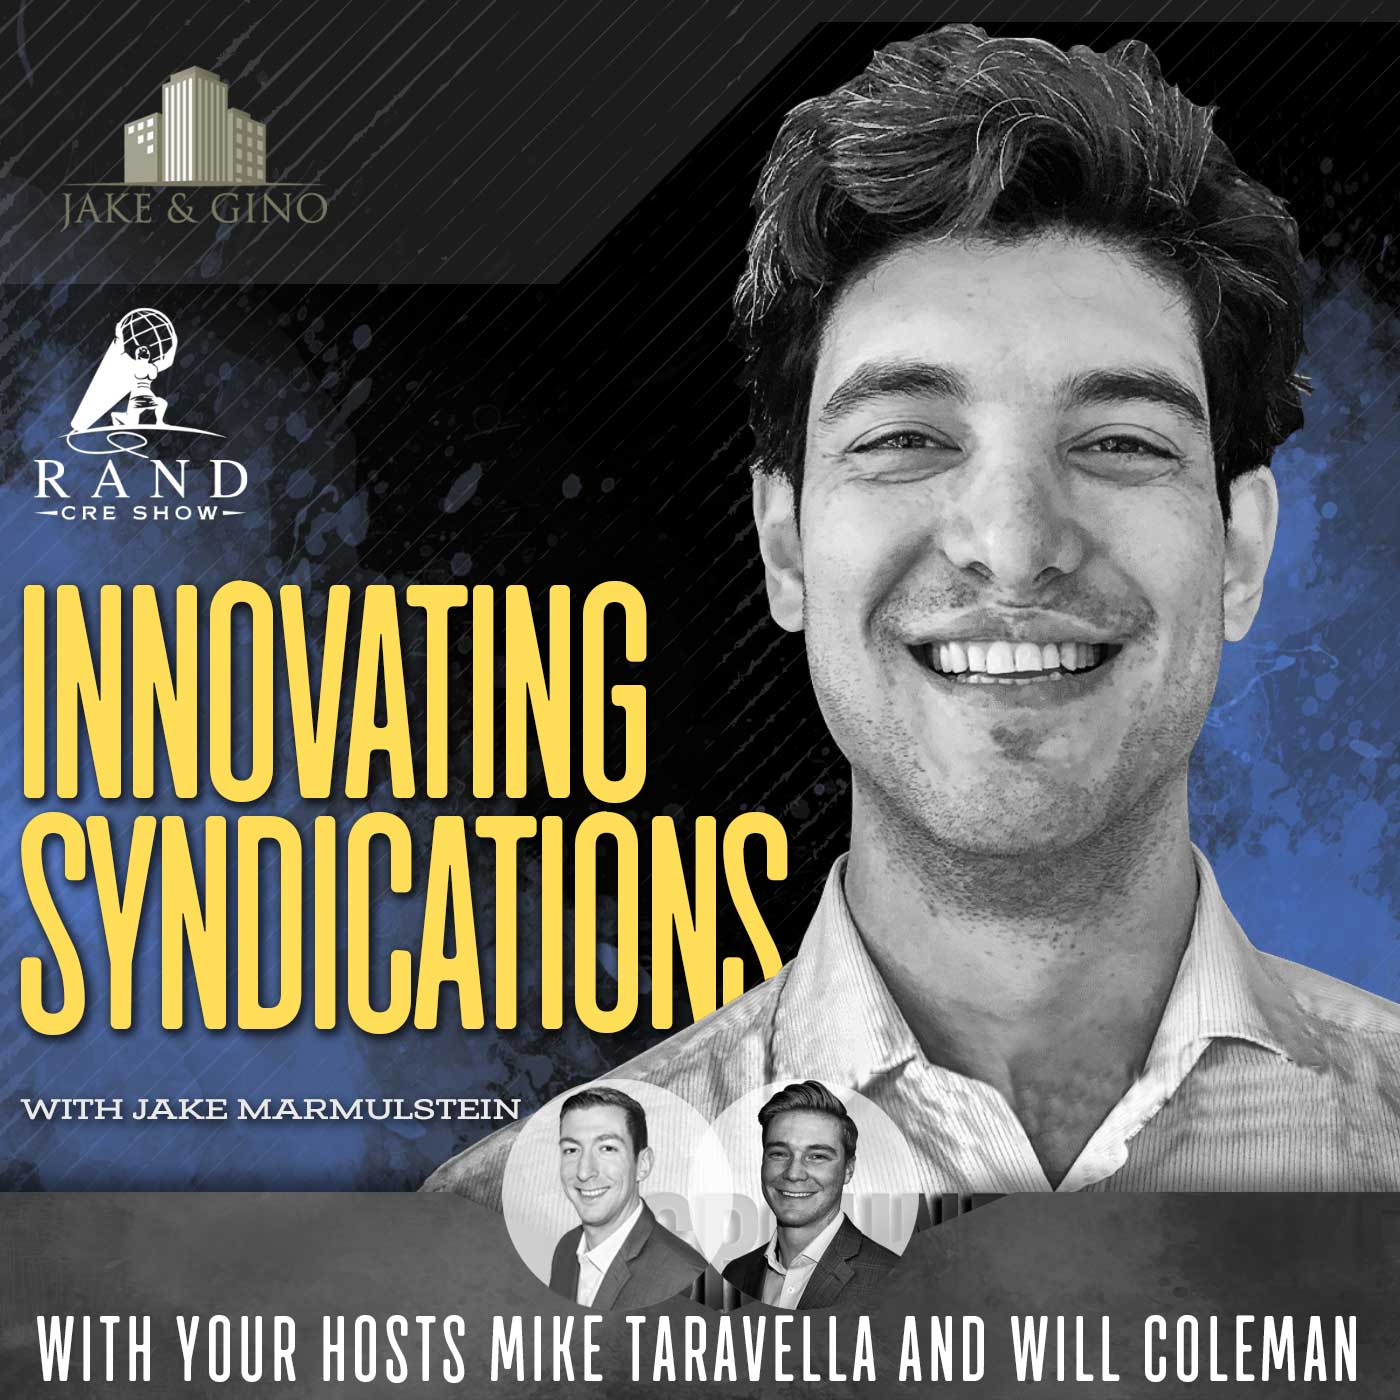 RCRE - Innovating Syndications with Jake Marmulstein